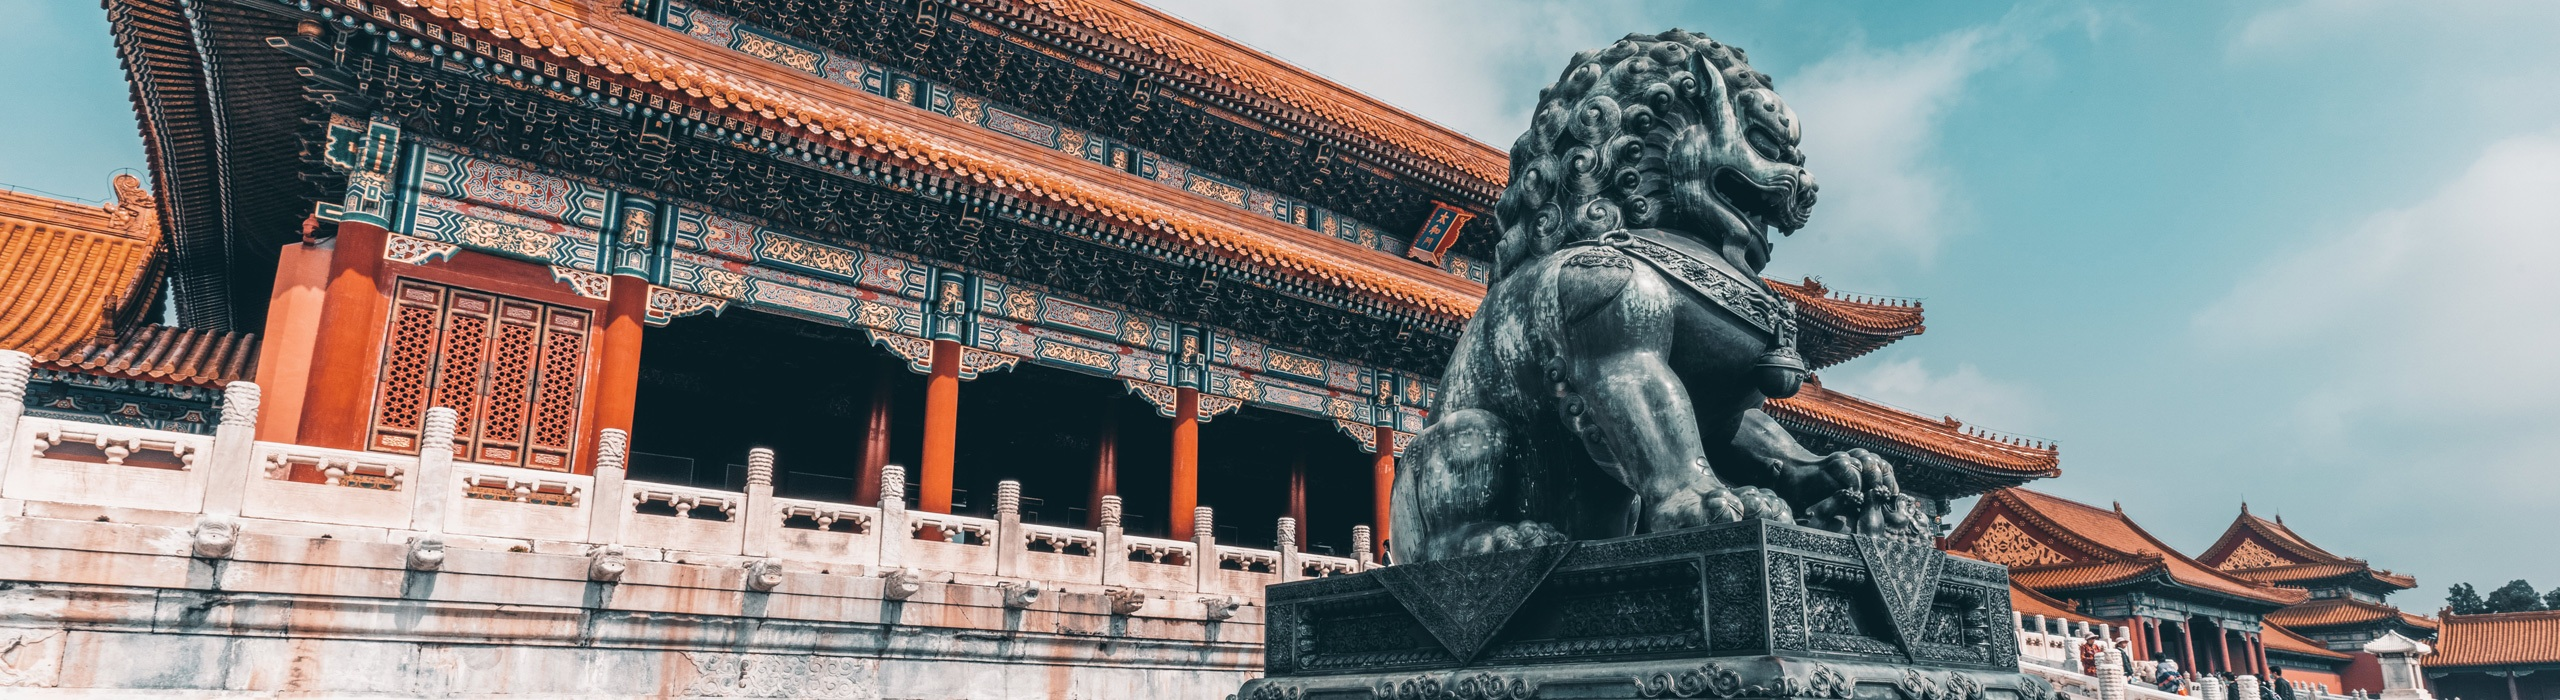 Private, Tailor-made China Tours 2021/2022